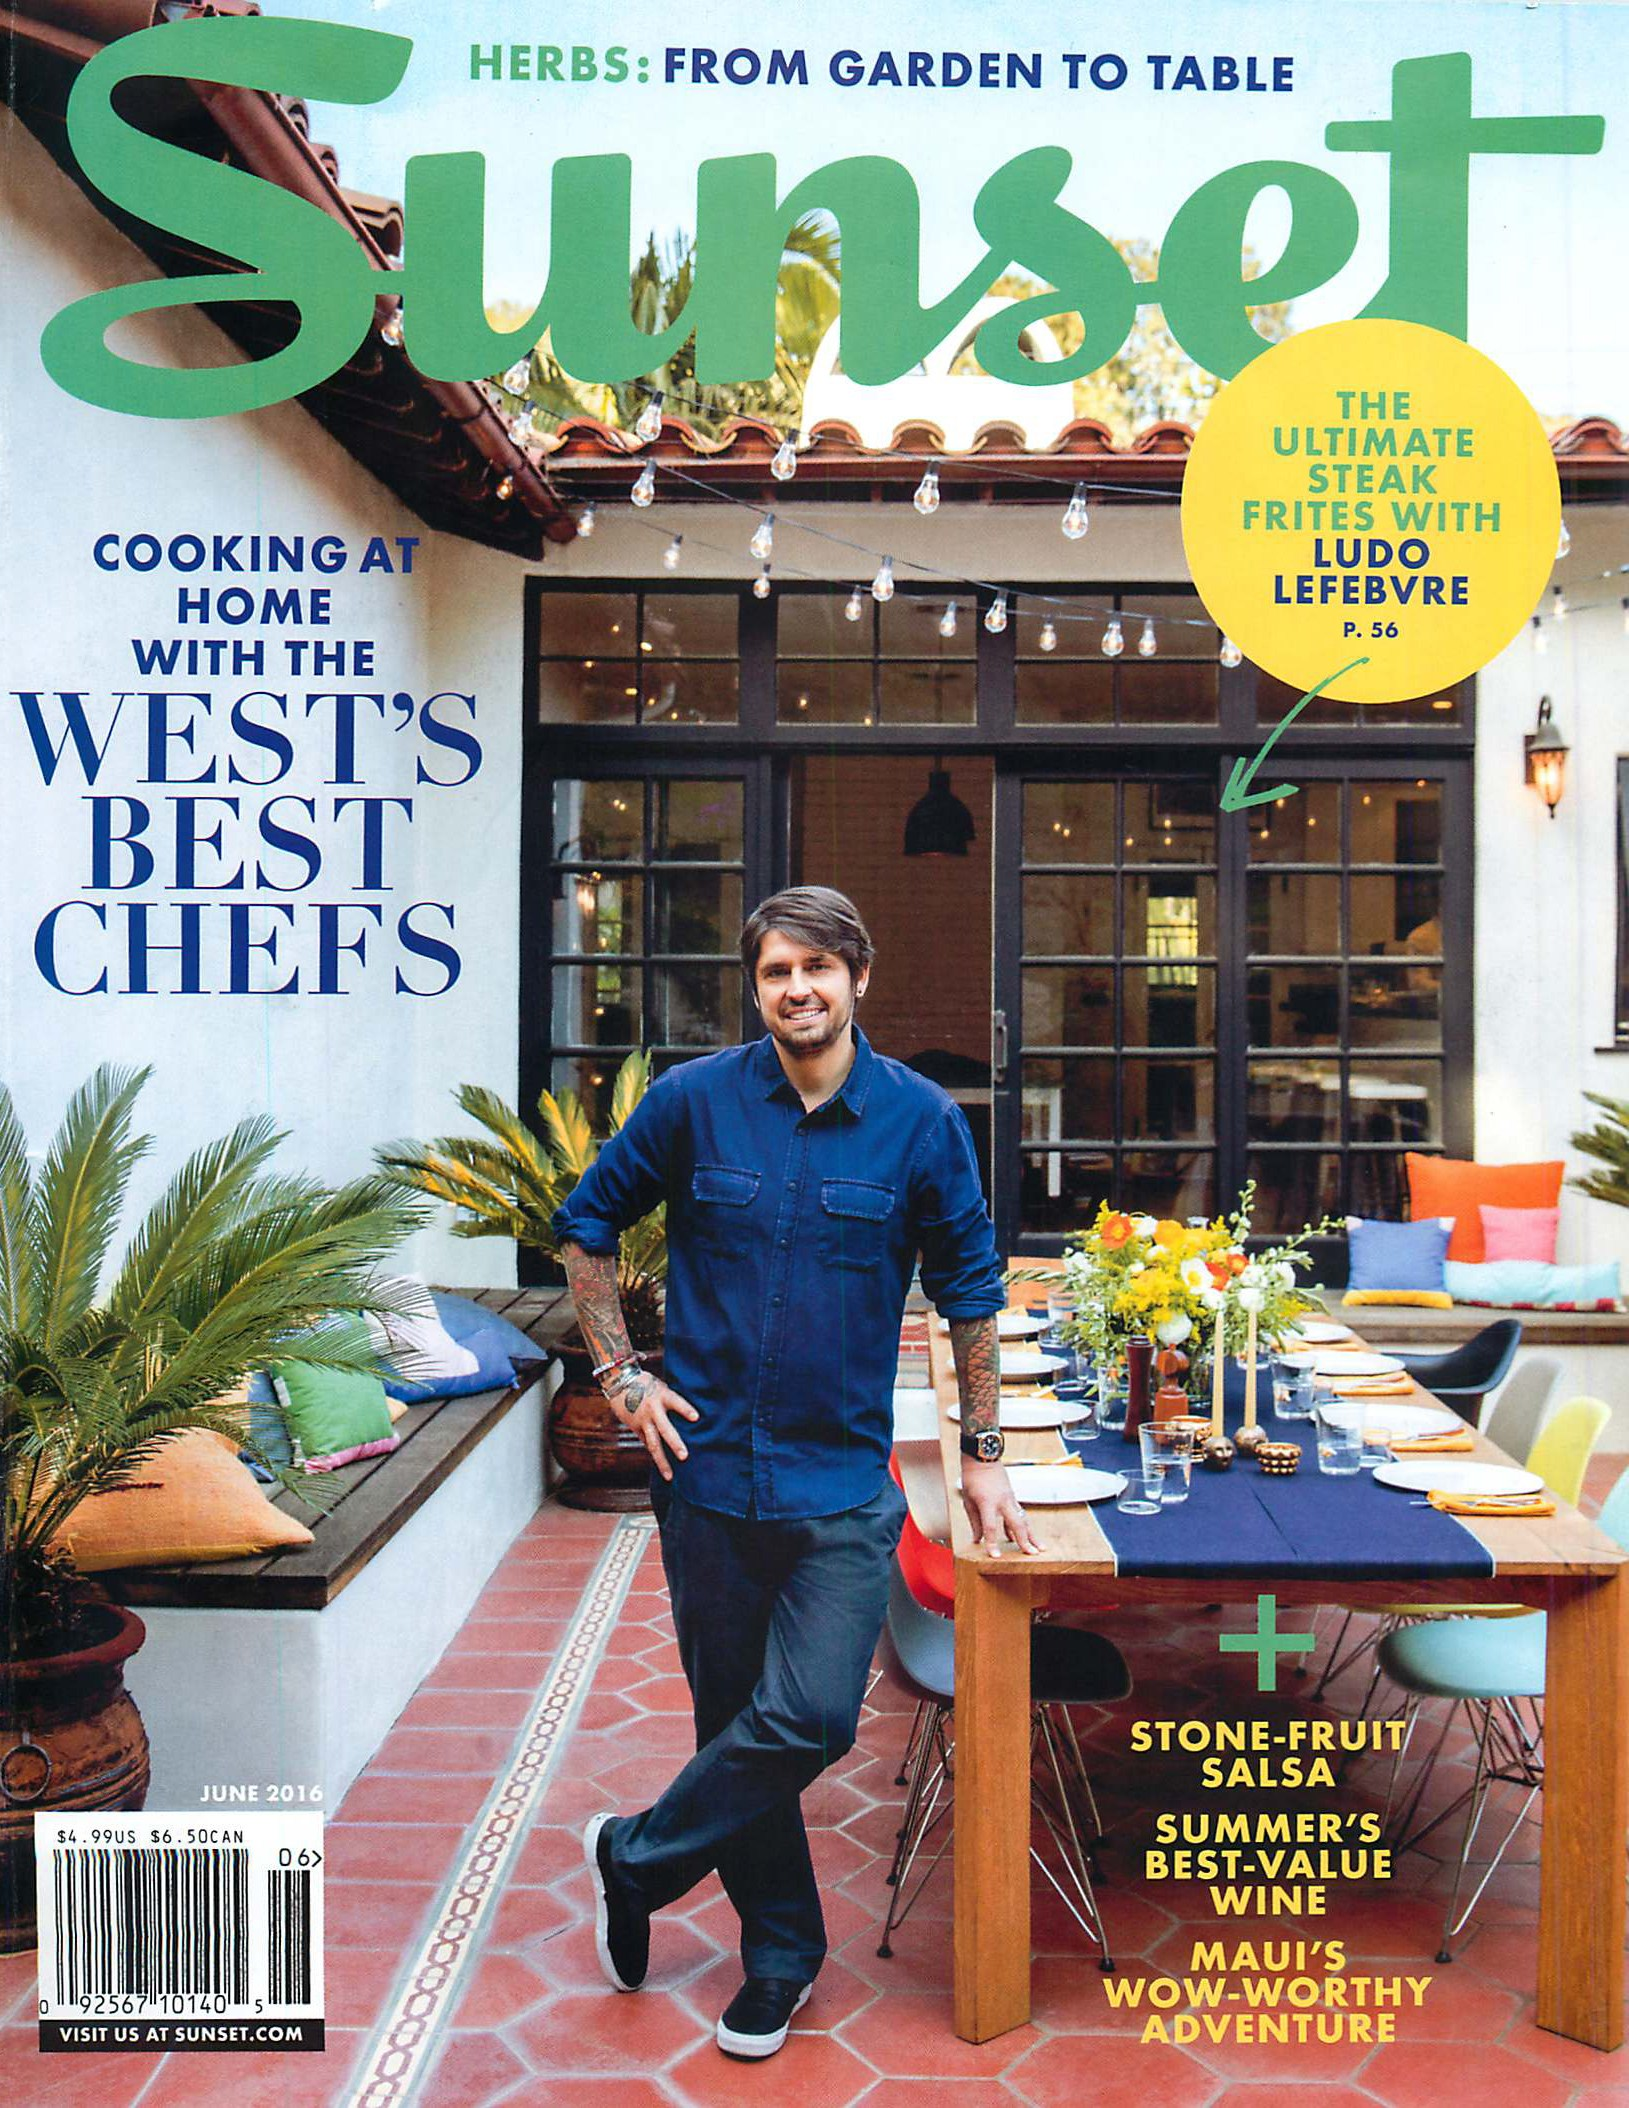 Sunset-Magazine-June-2016-Cooking-at-home-with-the-Wests-Best-Chefs.jpg